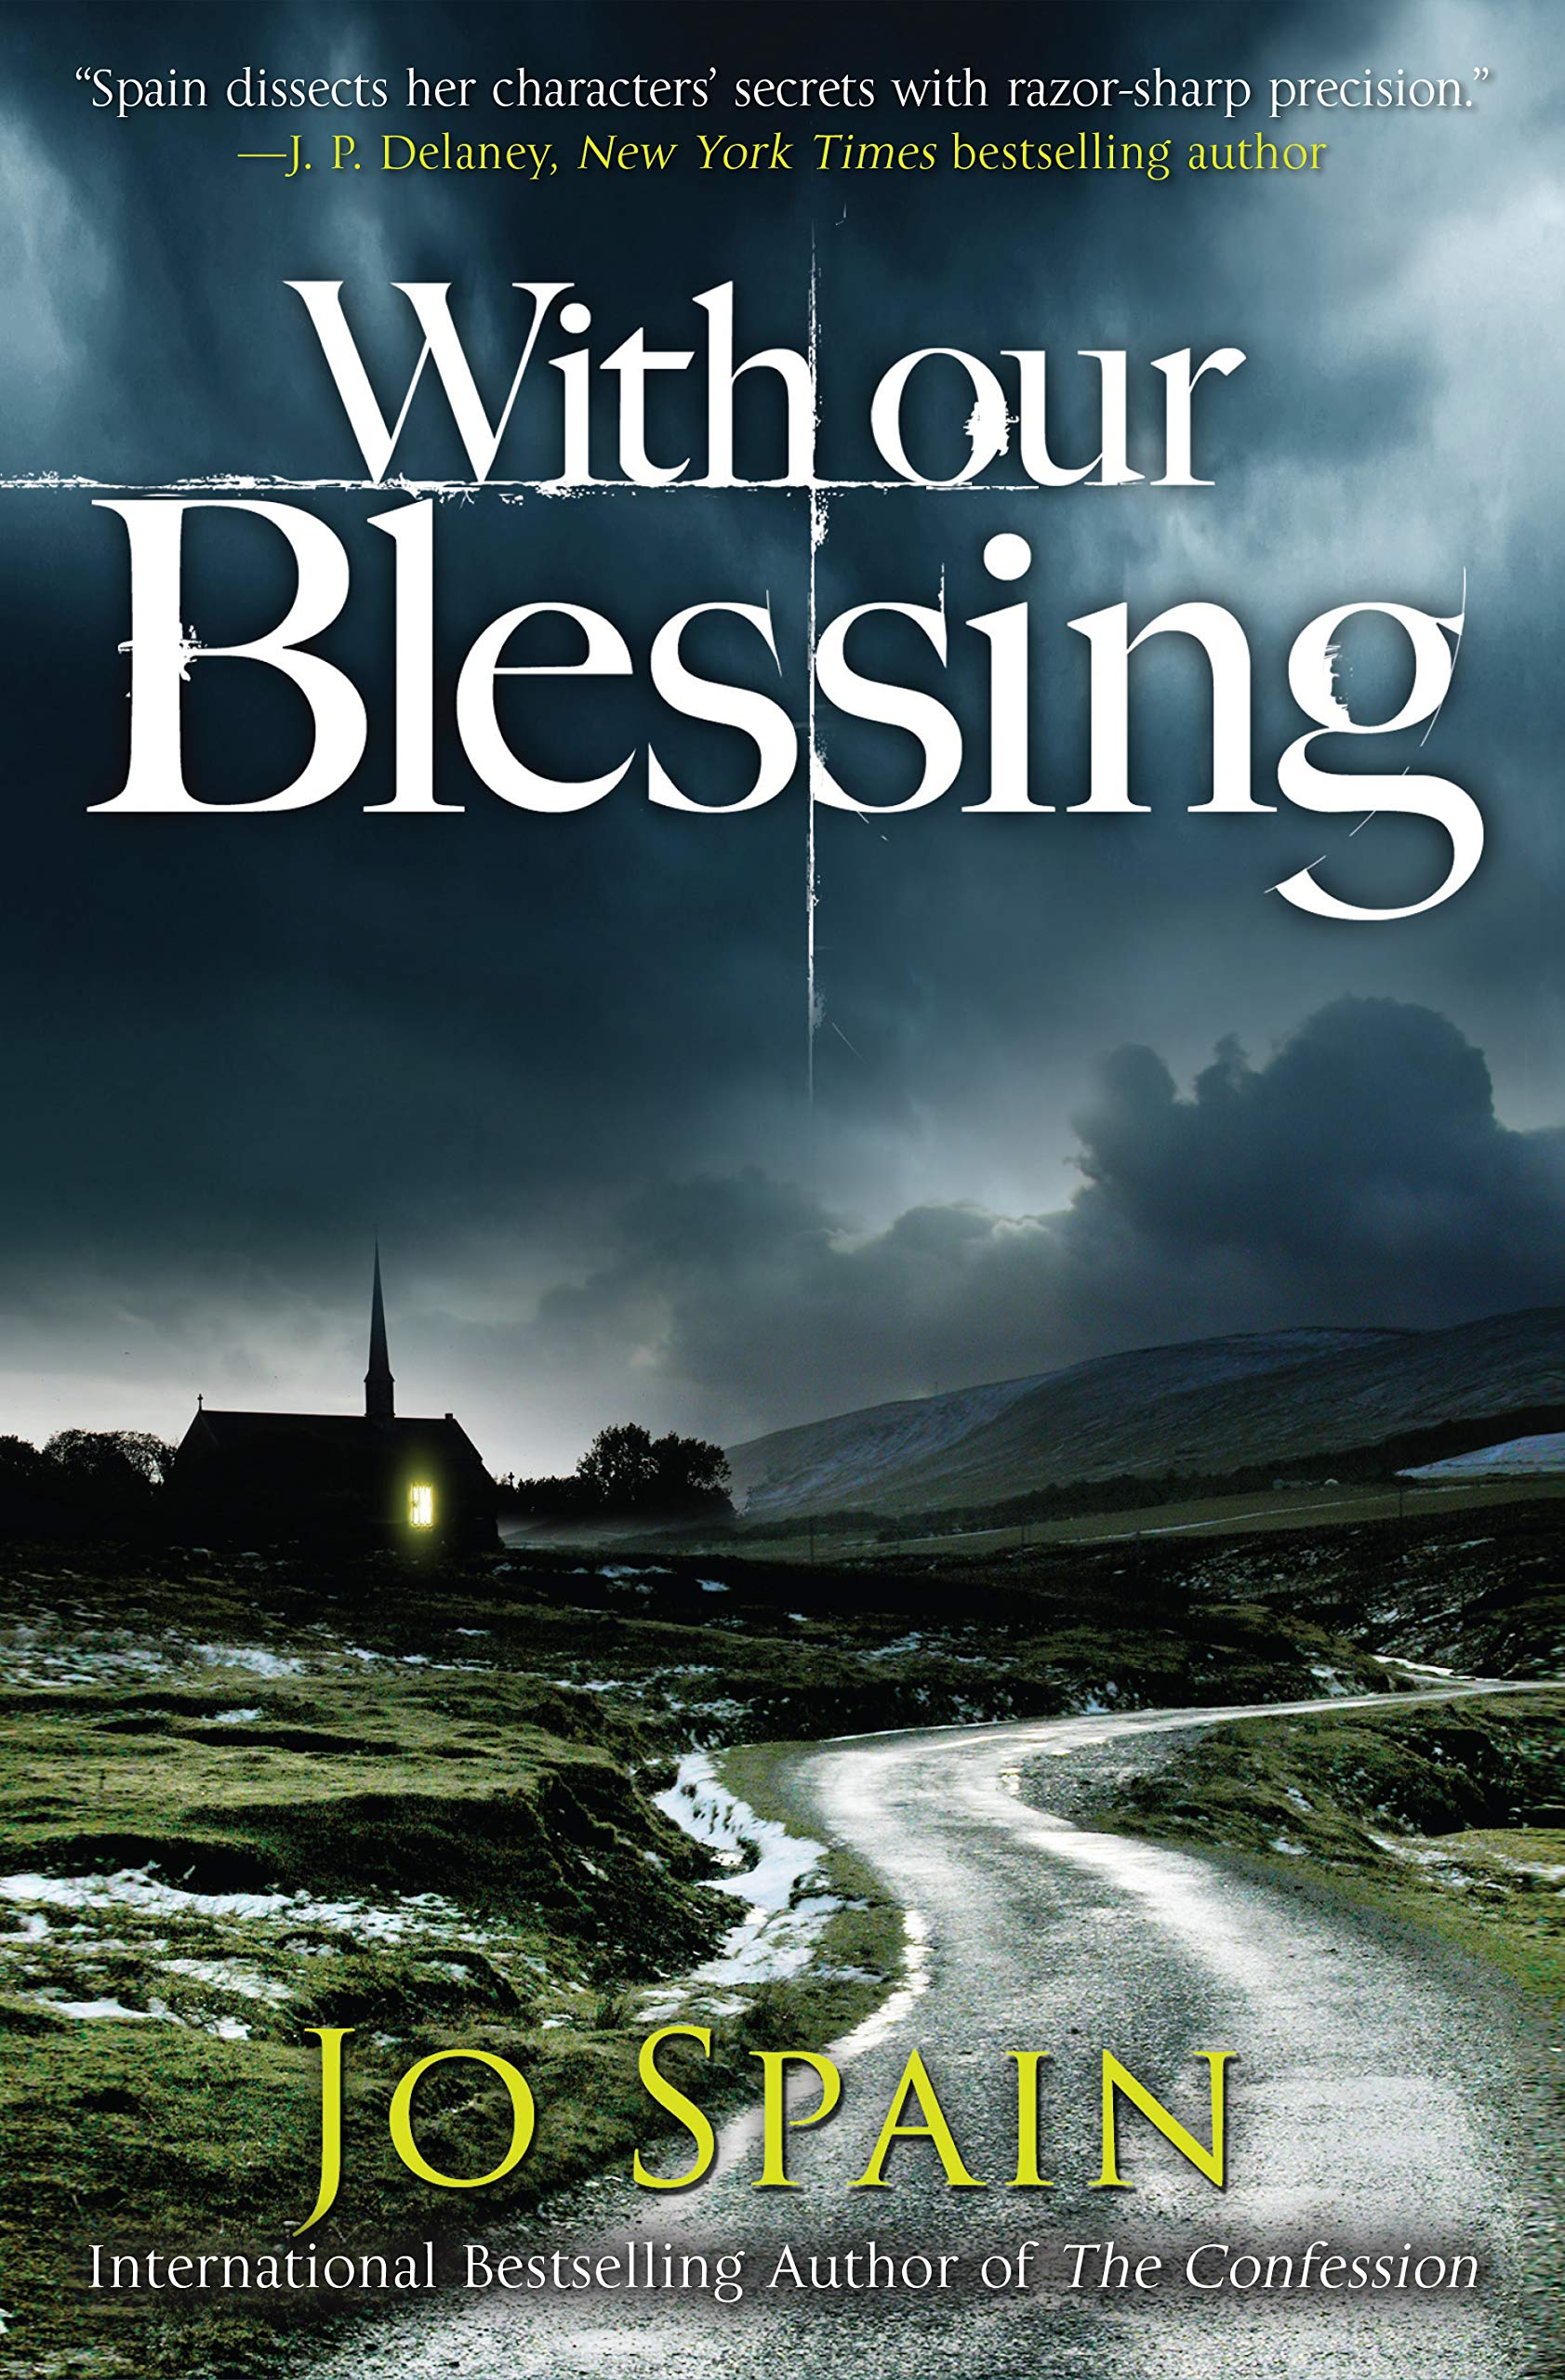 With Our Blessing: An Inspector Tom Reynolds Mystery